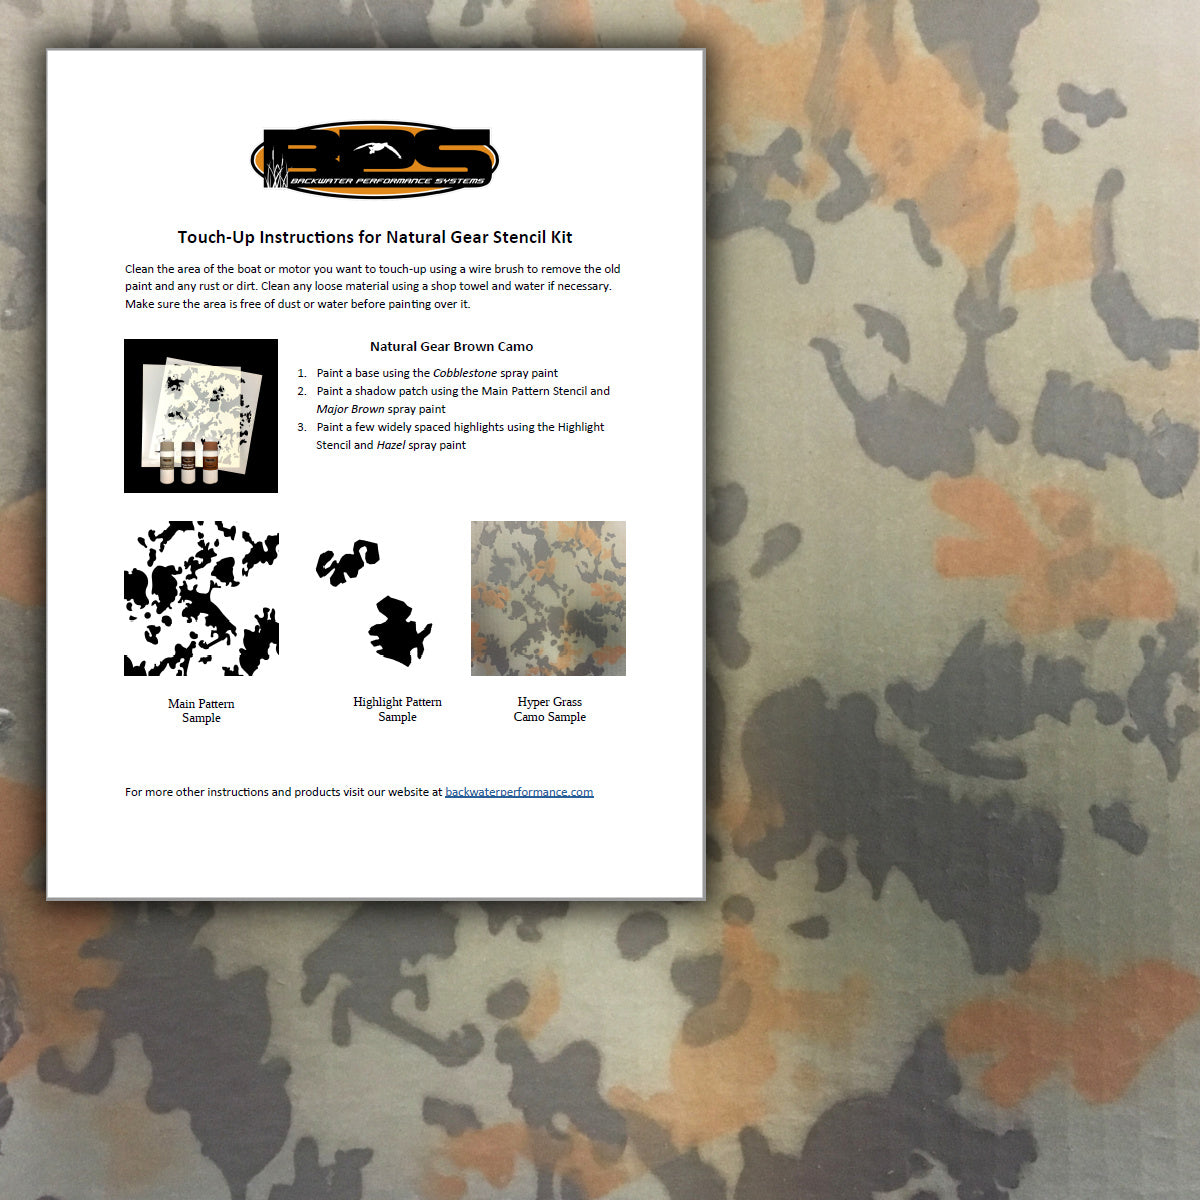 Touch-Up Instructions for Natural Gear Stencil Kit